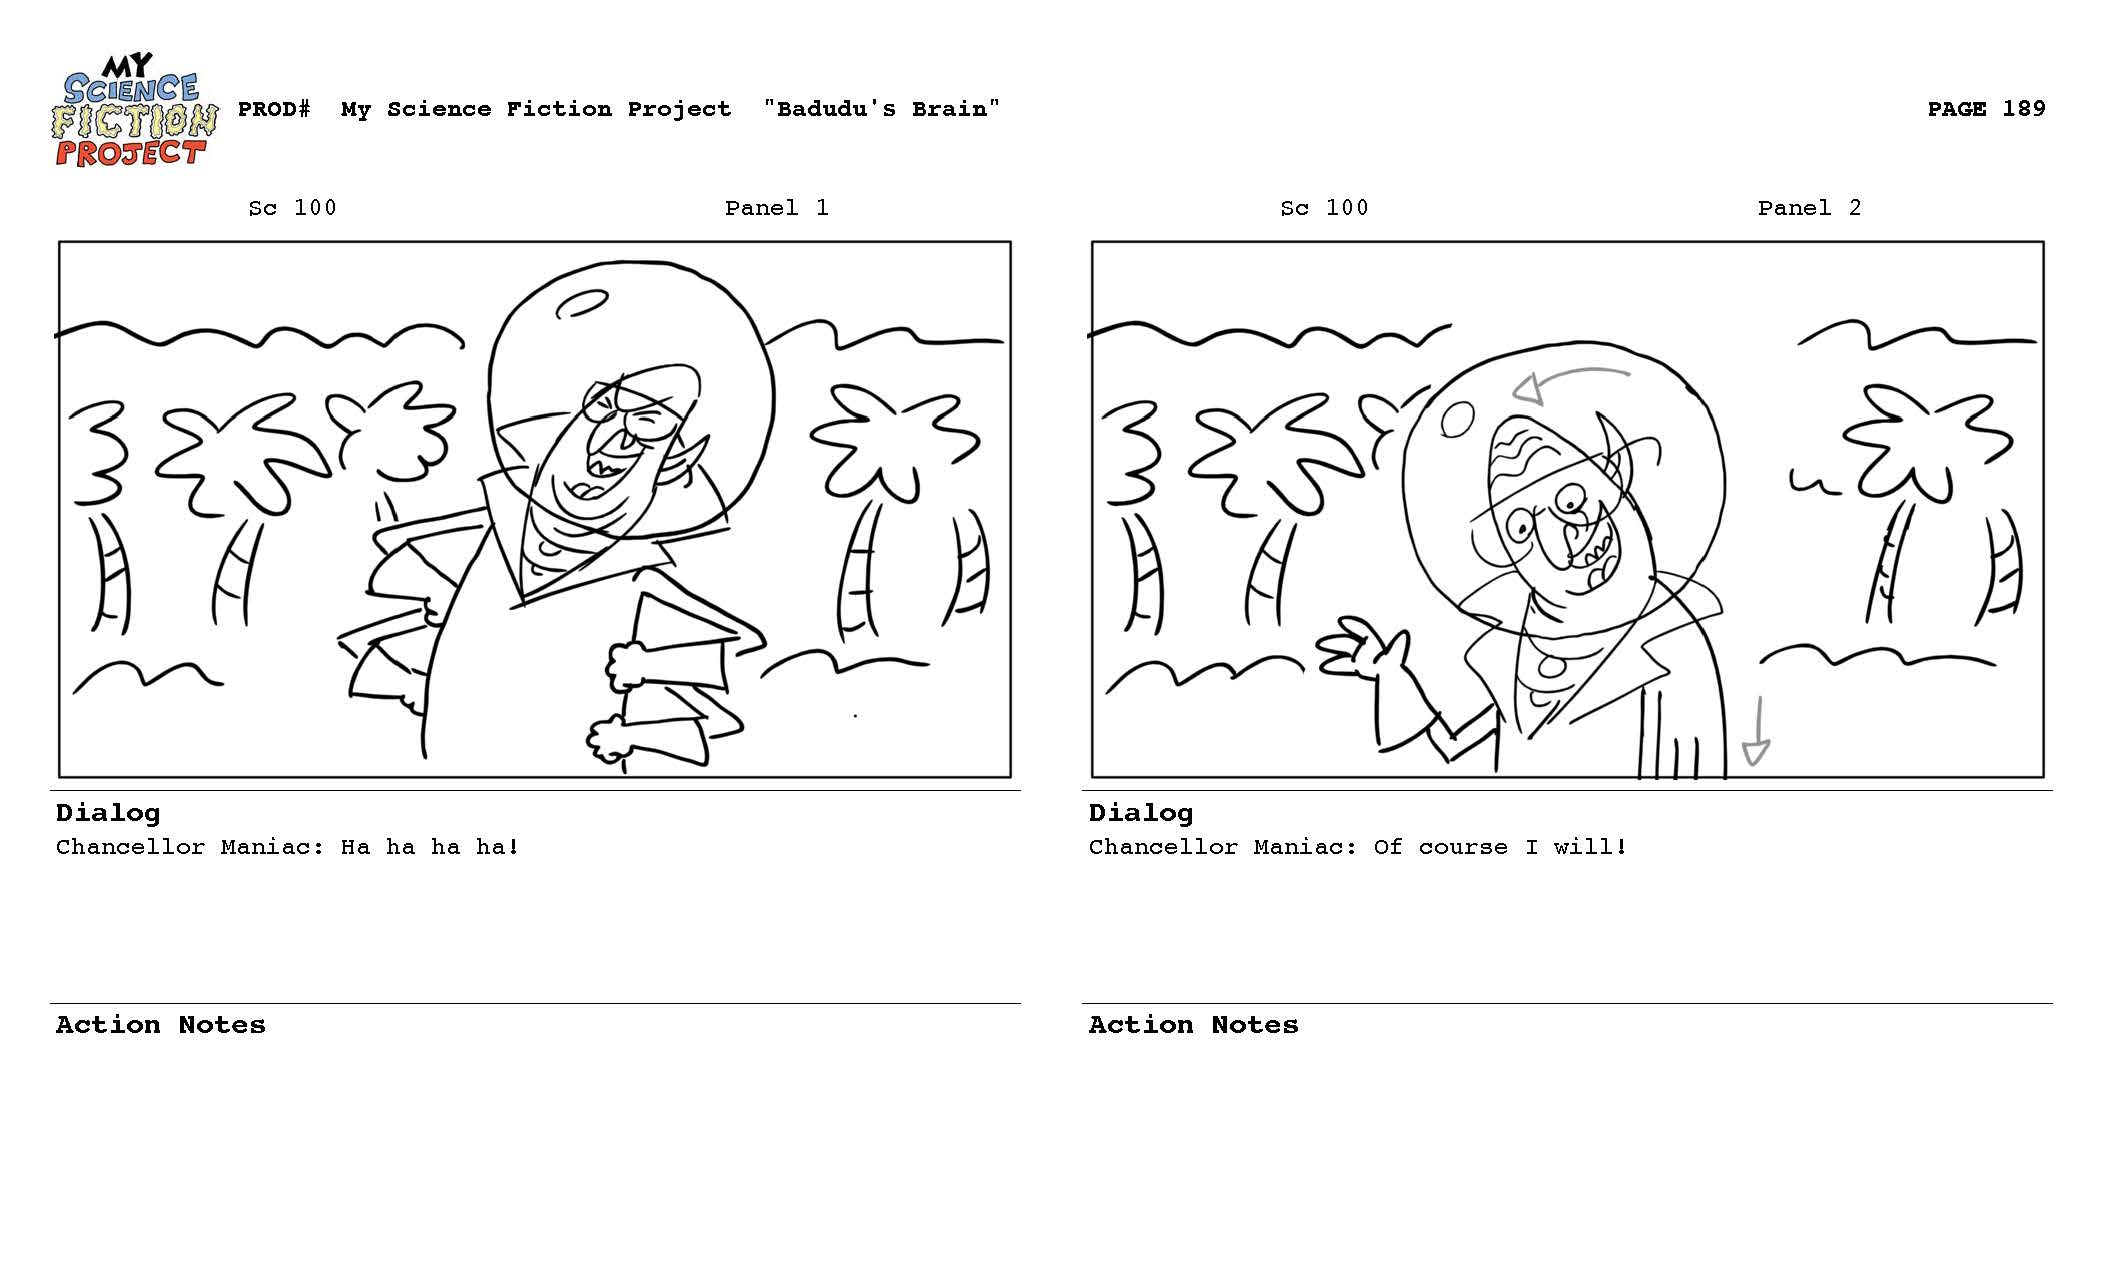 My_Science_Fiction_Project_SB_083112_reduced_Page_189.jpg